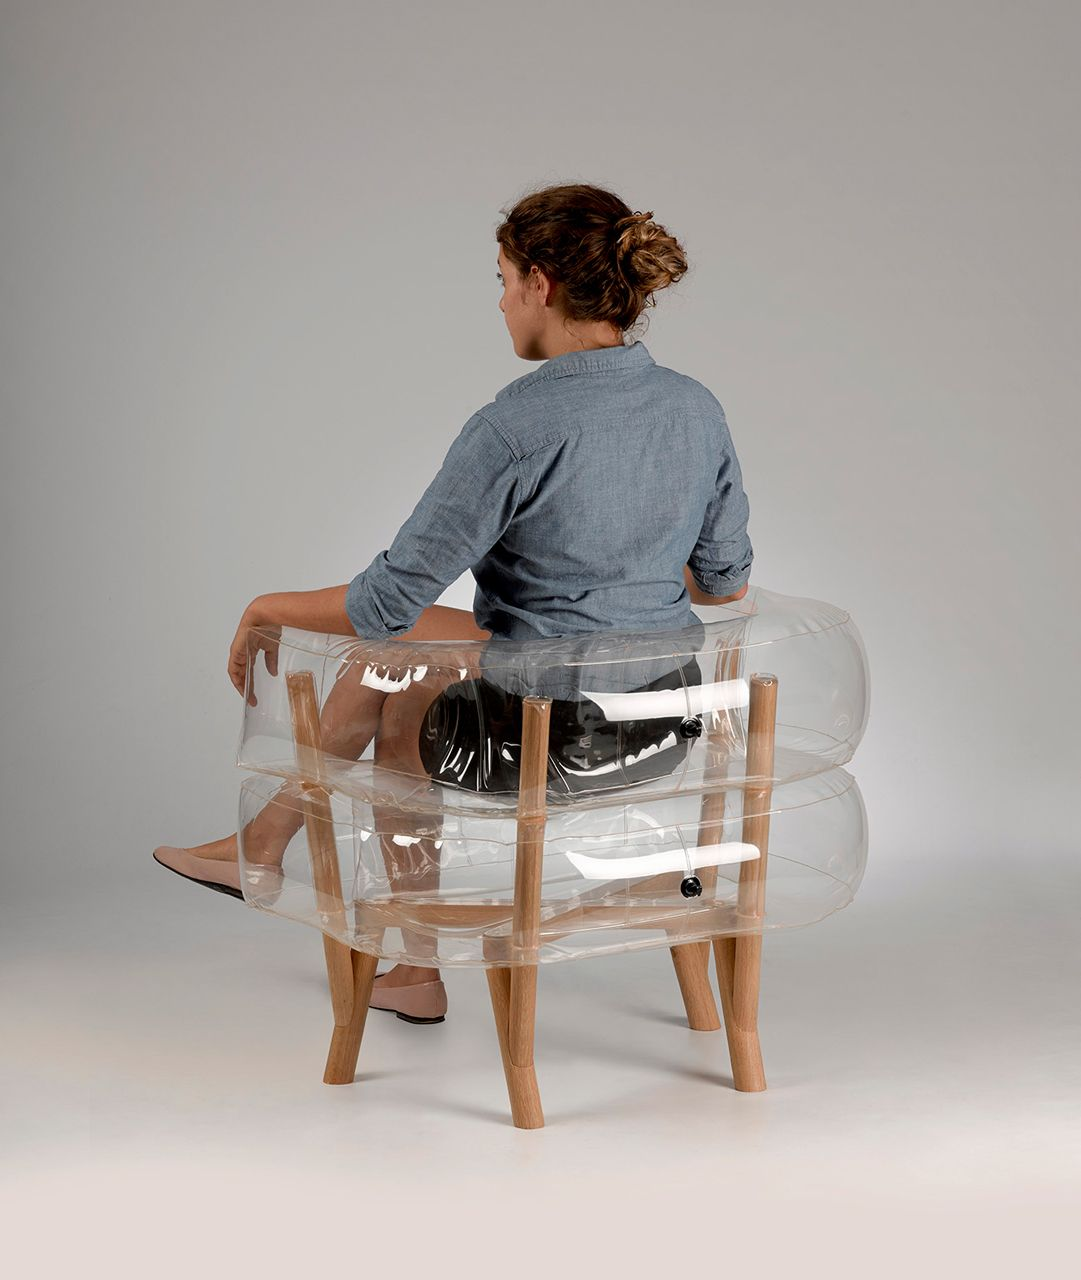 Inflatable furniture  Anda Chair by Tehila Guy  Inflatable chair and Guy